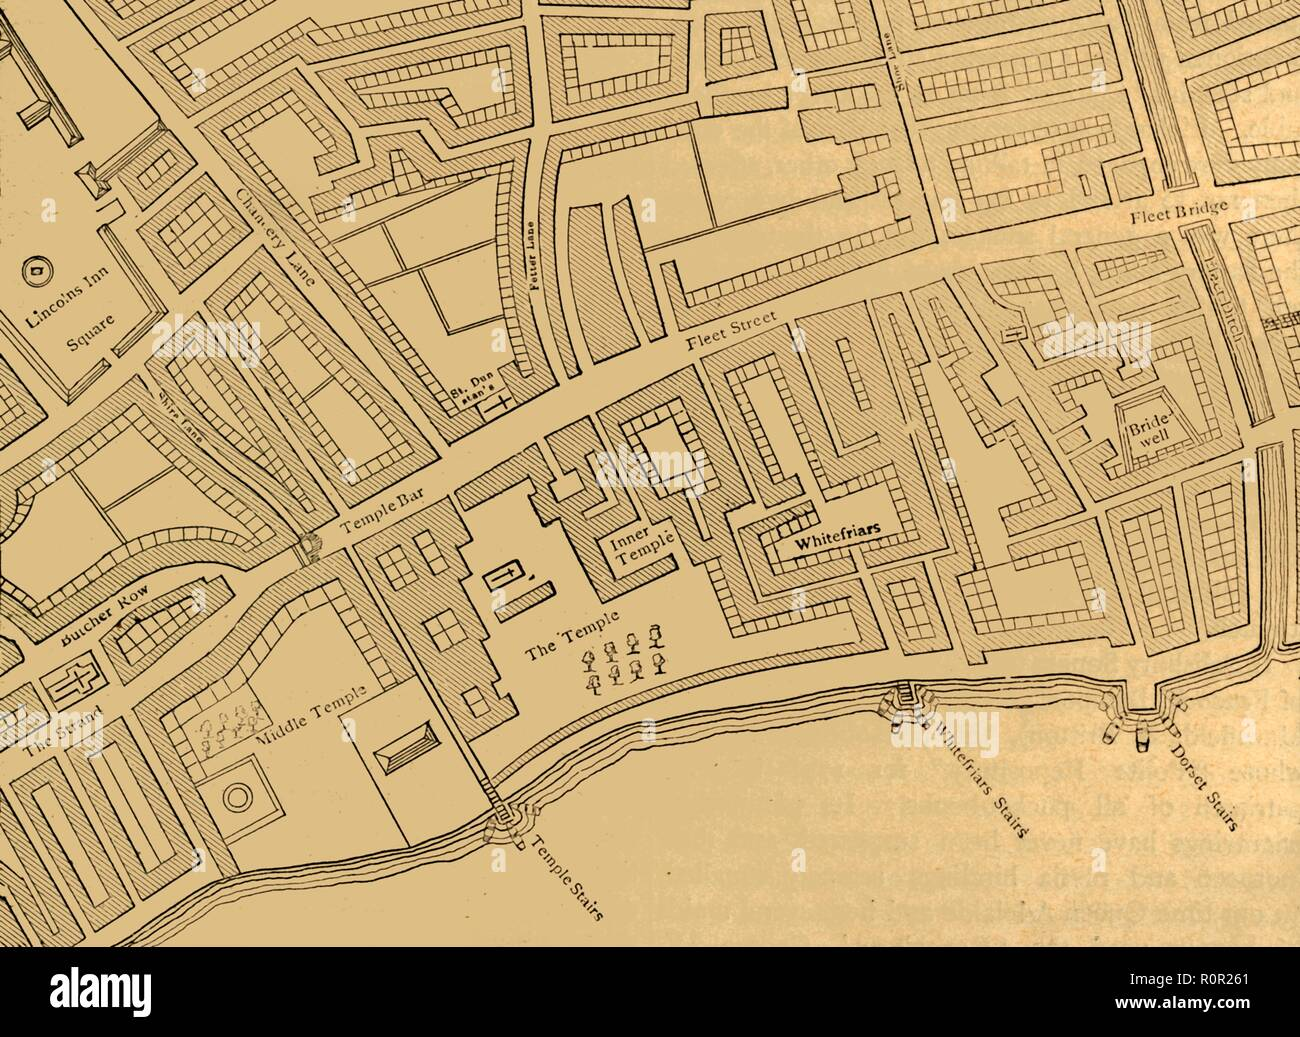 'Fleet Street, The Temple, Etc., From a Map of London, Published 1720', (1897). Map showing the Inns of Court at Temple and Lincoln's Inn, Whitefriars, the River Fleet, Bridewell, and stairs down to the River Thames. From Old and New London, Volume I, by Walter Thornbury. [Cassell and Company, Limited, London, Paris & Melbourne, 1897] - Stock Image